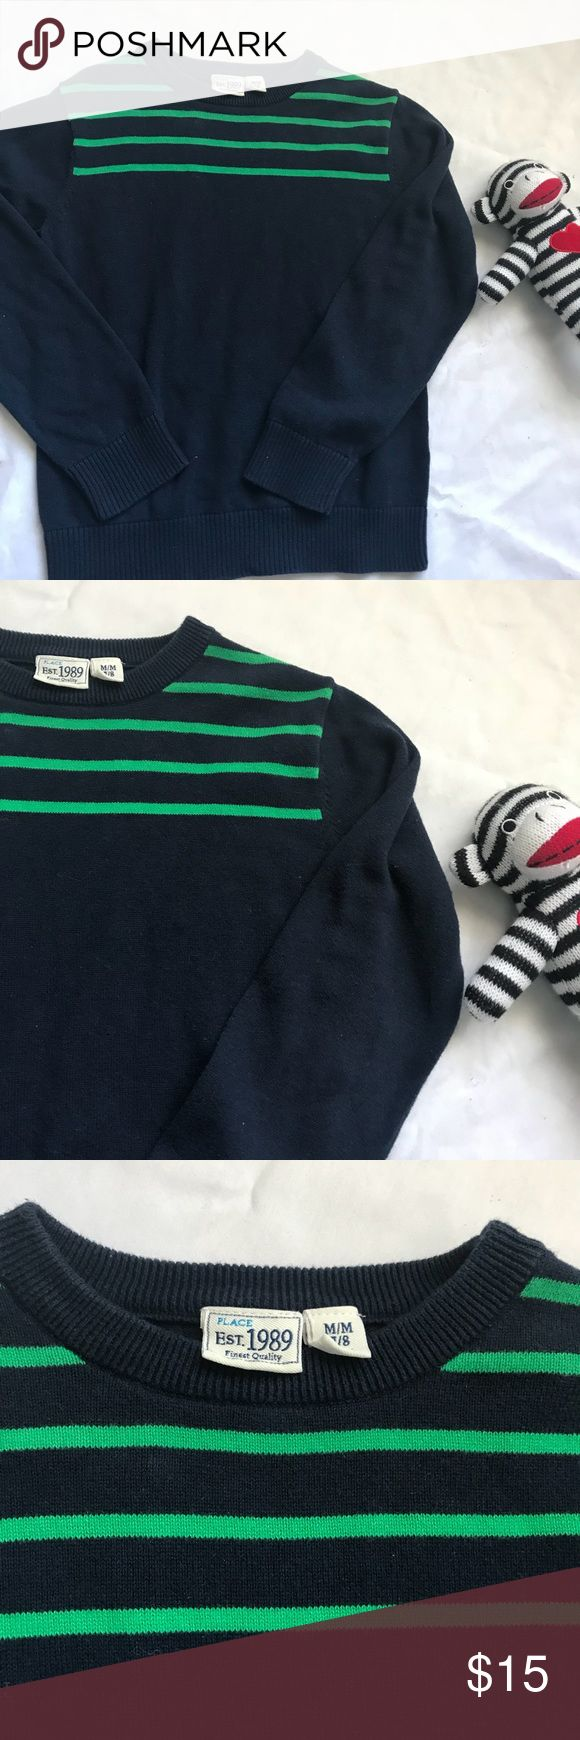 """CHILDREN'S PLACE Kids dress up sweater boys size M The Children's Place classic sweater. Dress up holiday. Size Medium 7/8. Sleeve is 19"""". Pit to pit 15"""". Length is 20"""". A25 The Children's Place Shirts & Tops Sweaters"""